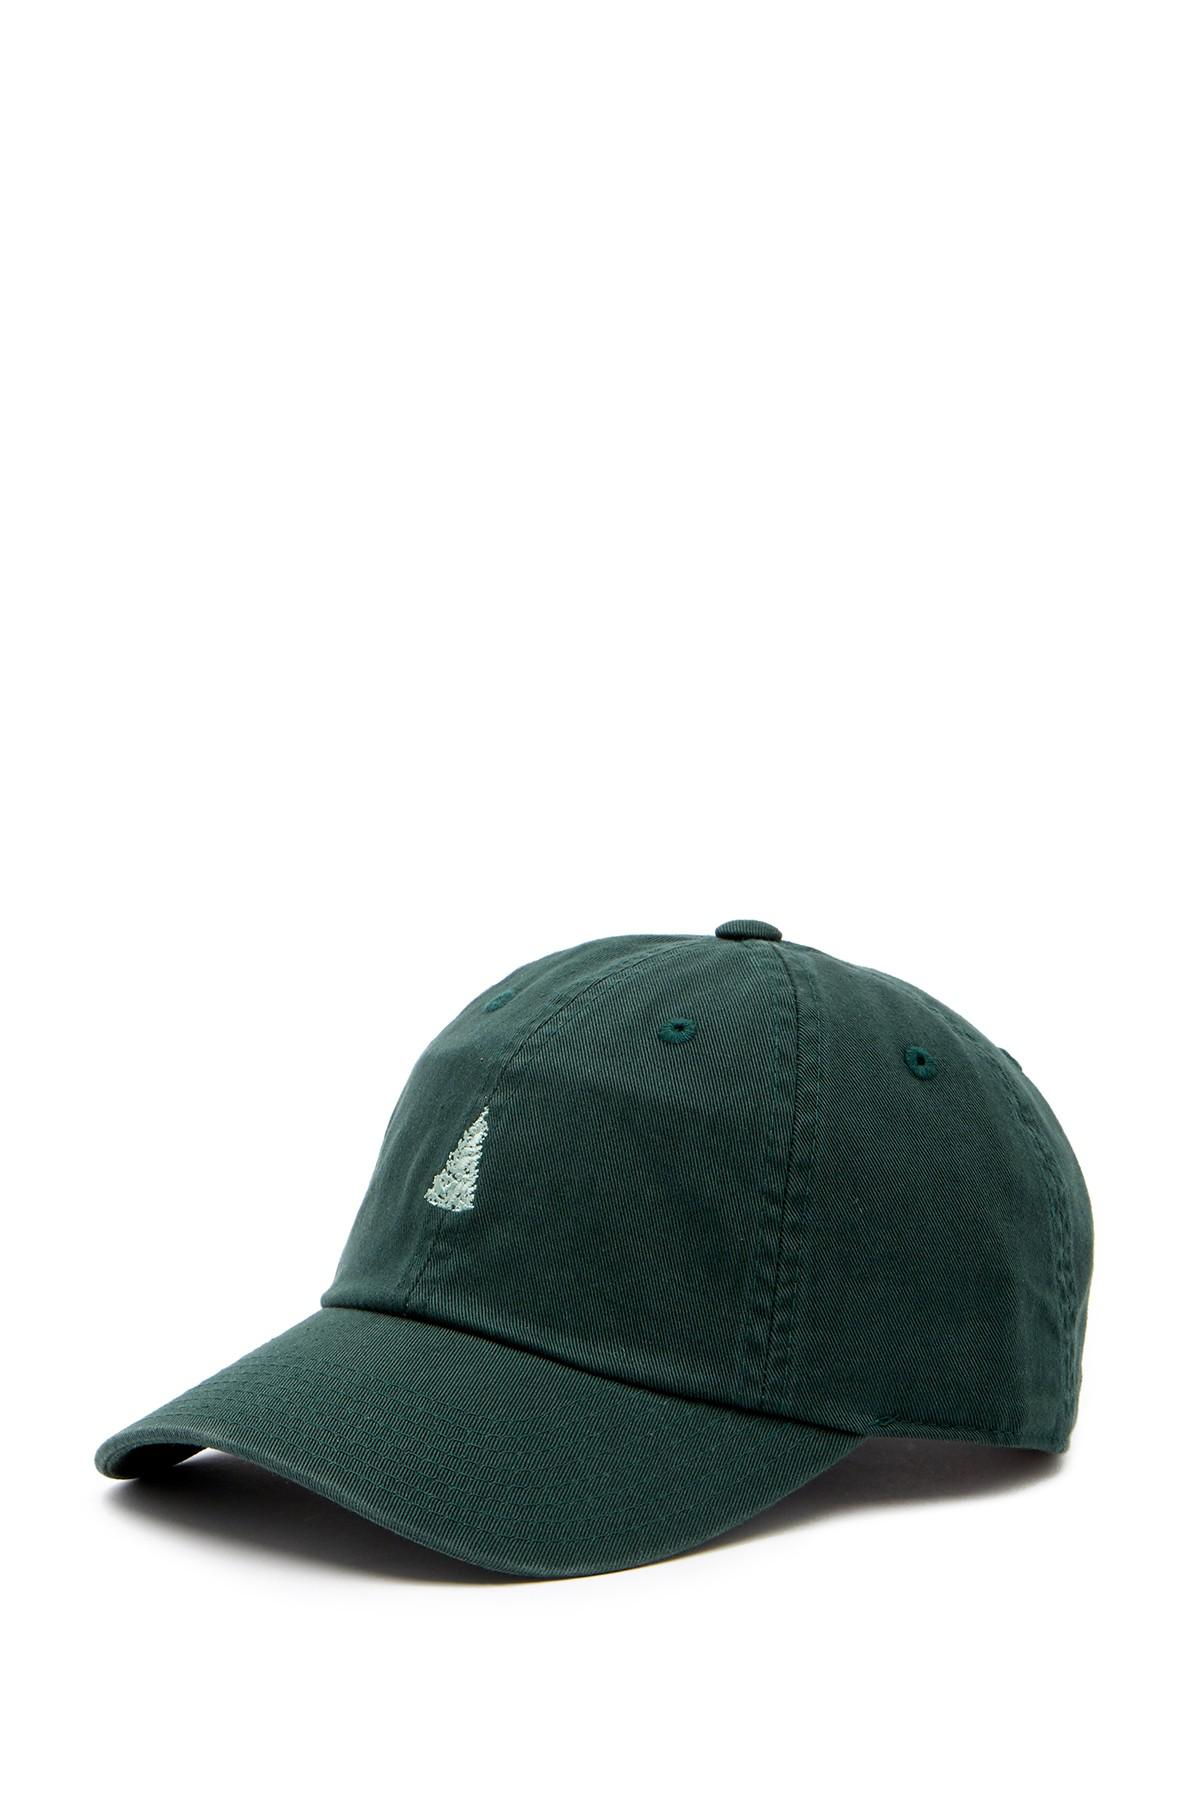 d1bfd1b9c9b Men s Green Tree Micro Baseball Cap. See more American Needle Hats.